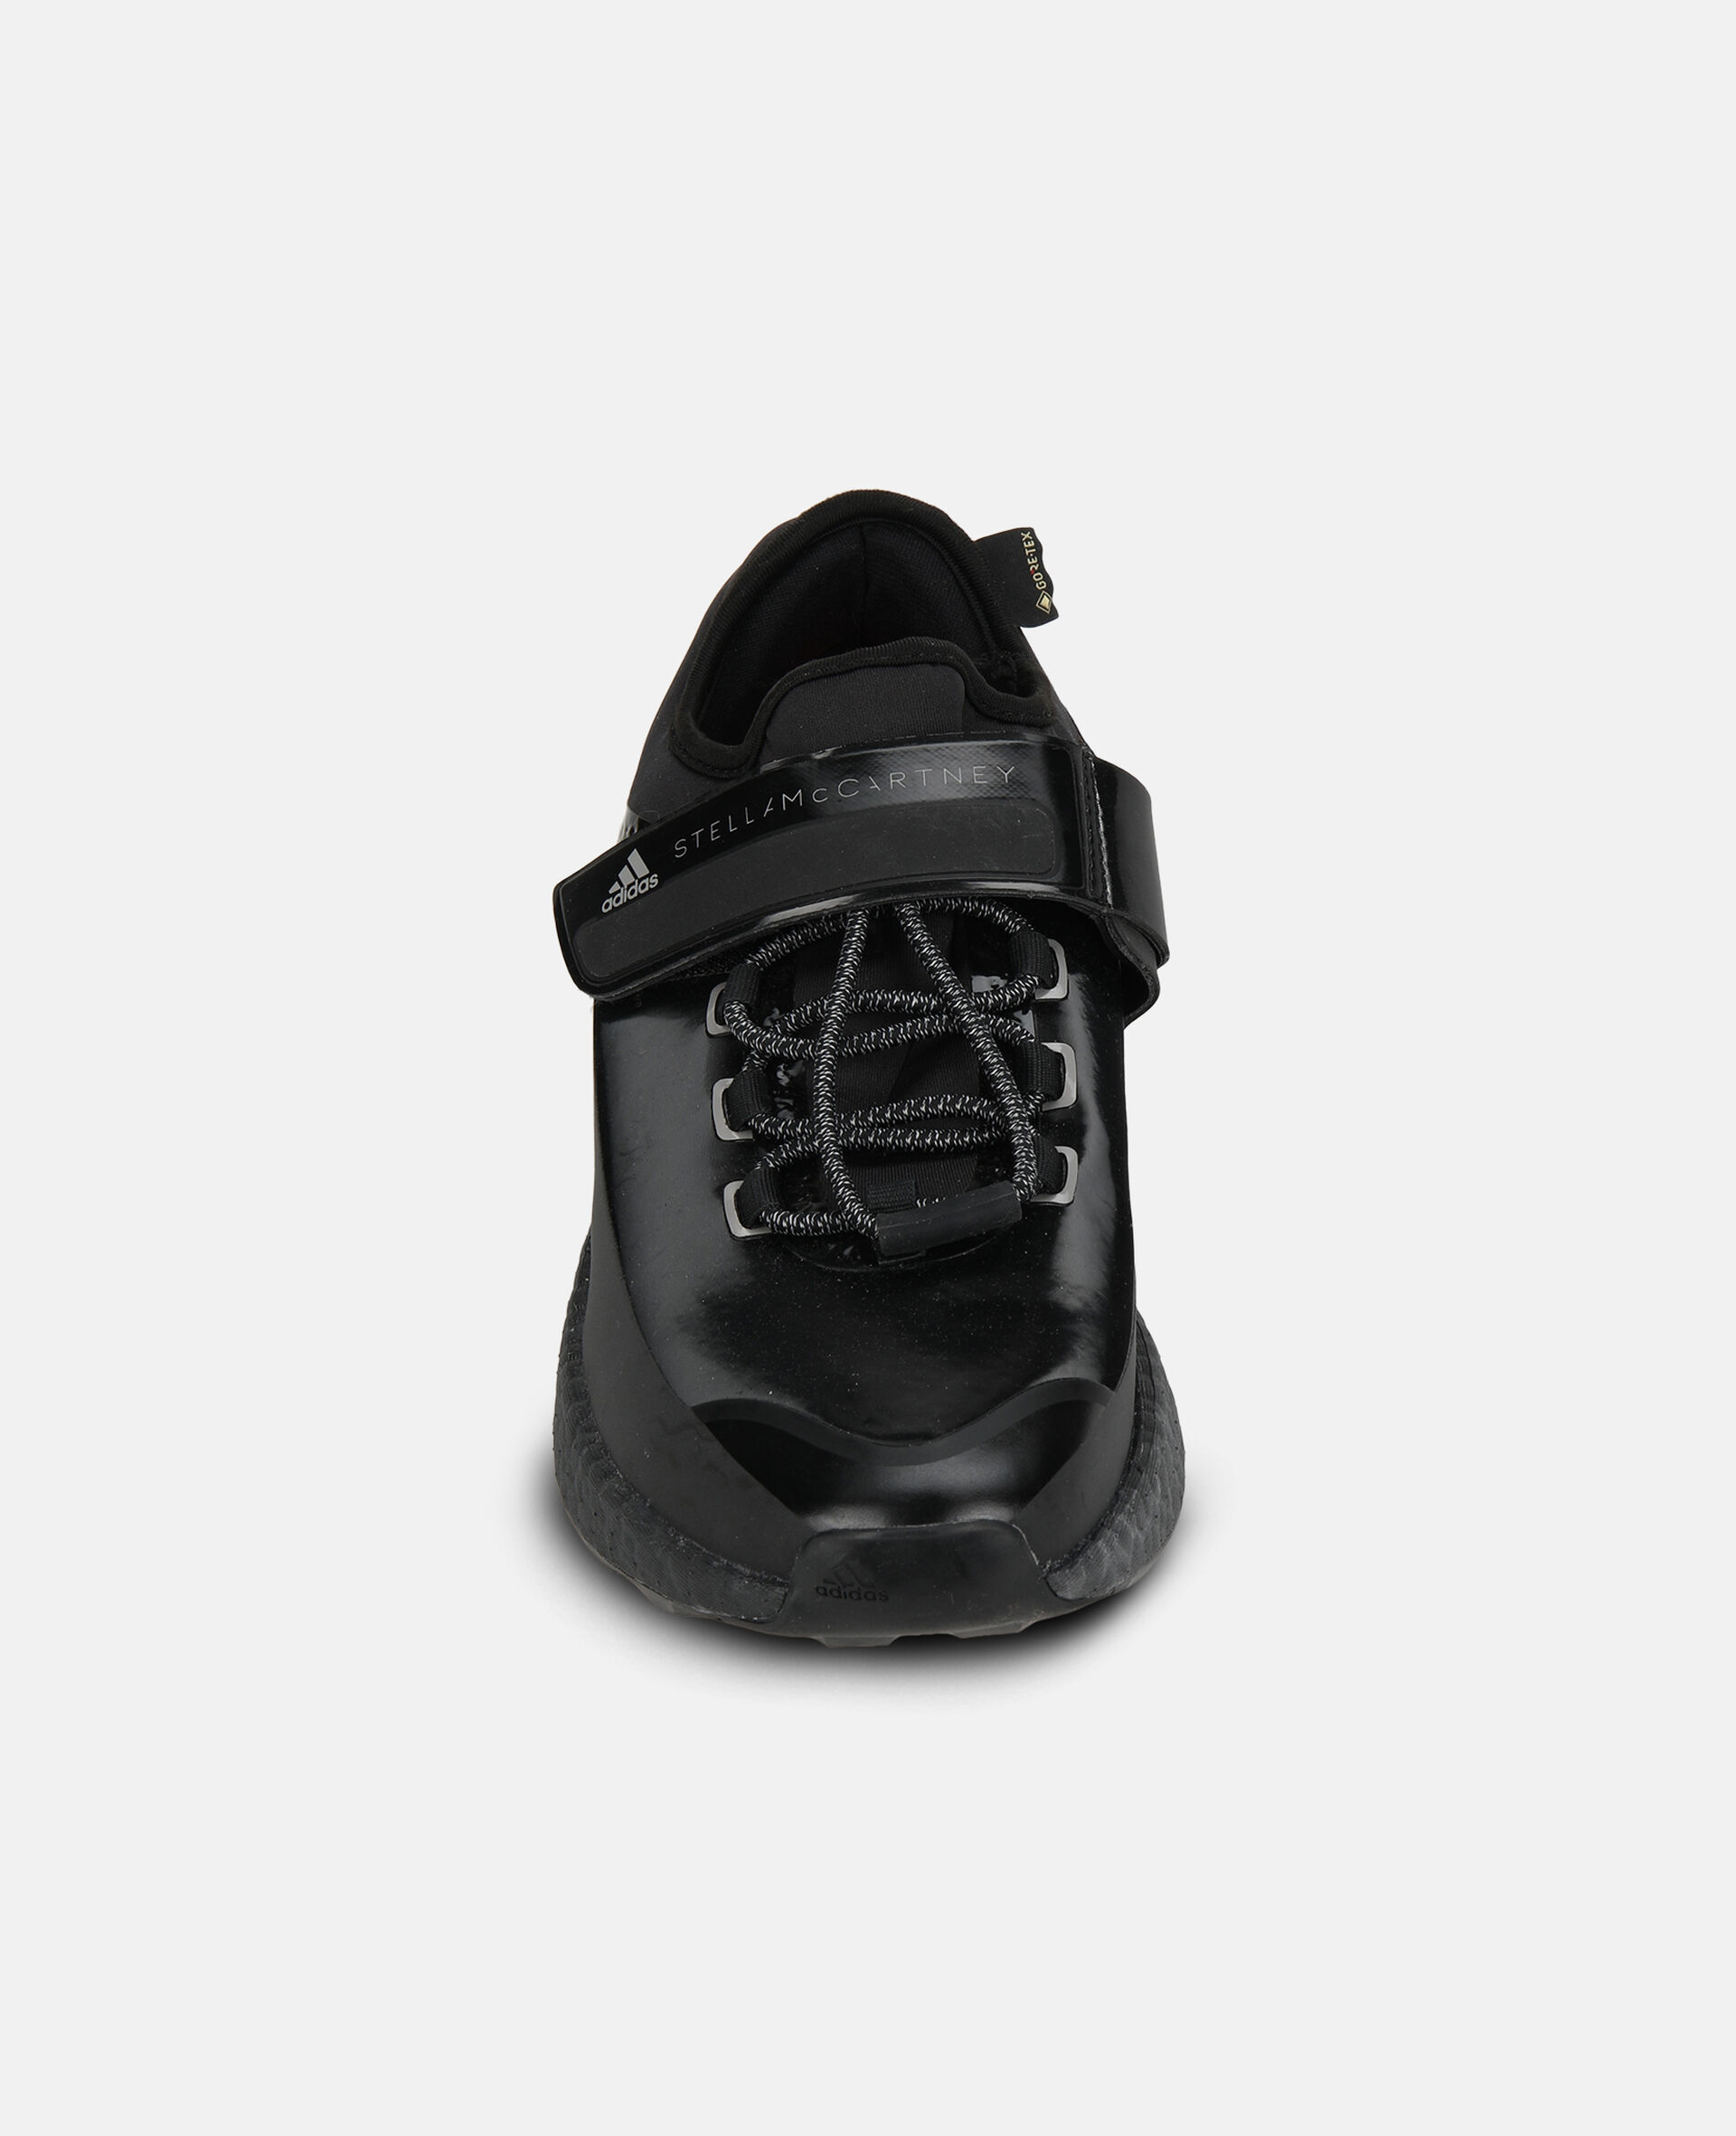 Black Outdoor Boost rain.rdy Sneakers -Black-large image number 2